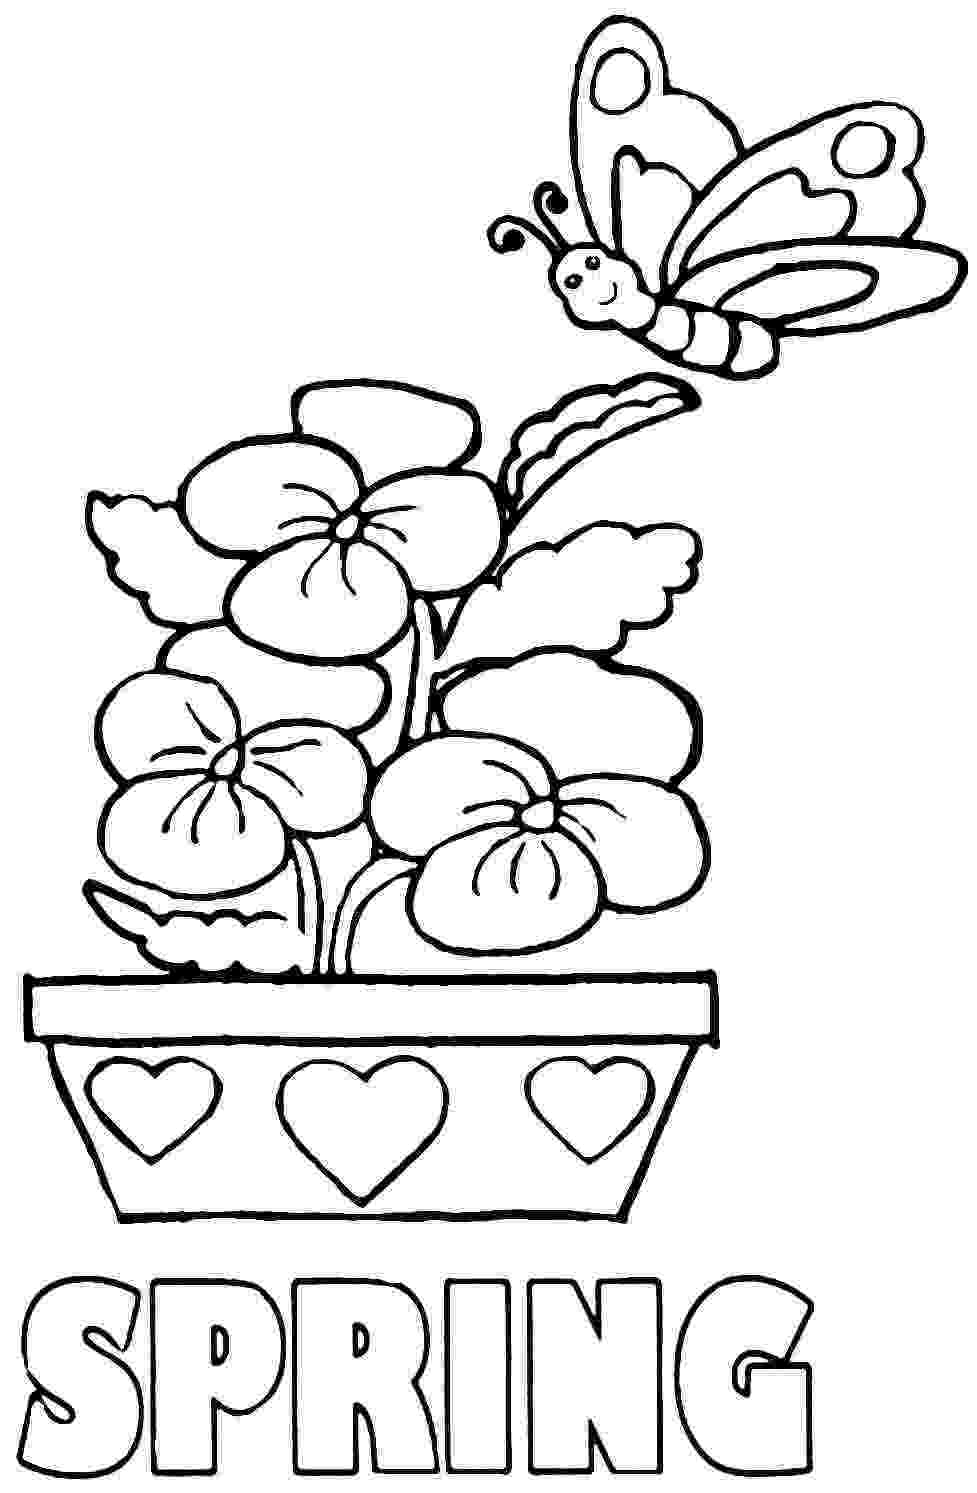 spring coloring pages coloring pages spring coloring pages 2011 pages coloring spring